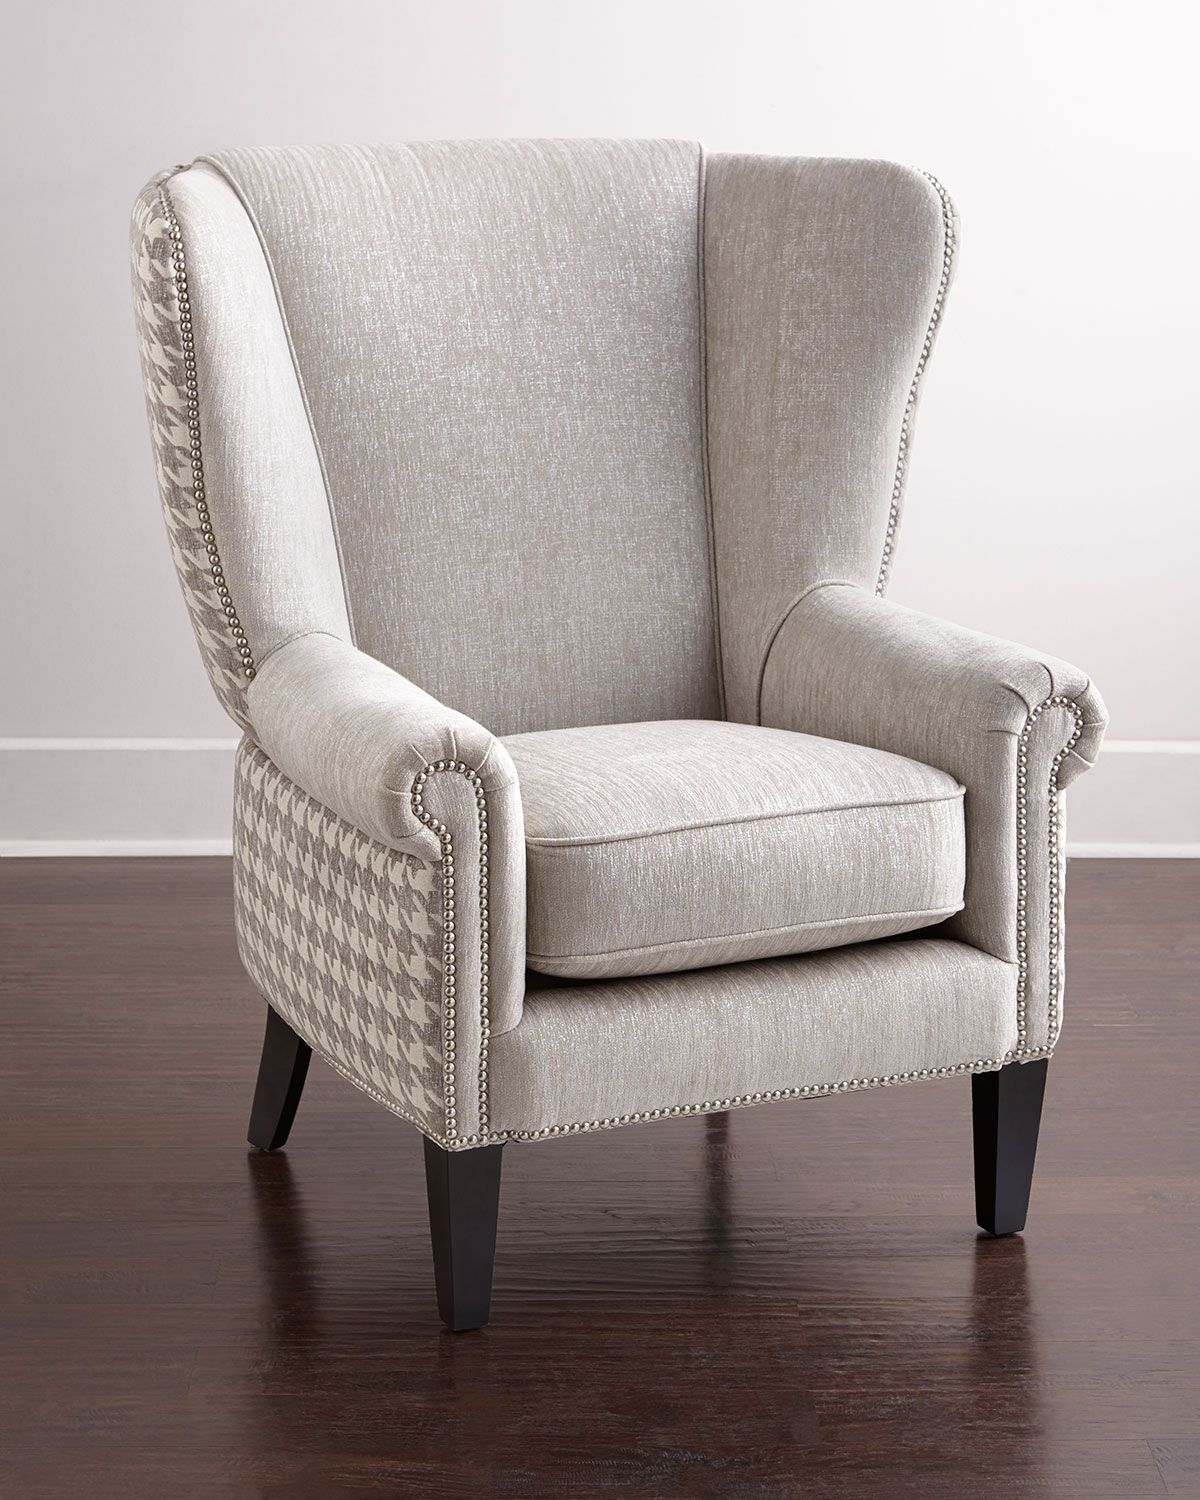 Wing chair has hardwood frame and acrylic polyester upholstery 32 5w x 36d x 45t seat 21w x 22 5d x 24 5t made in the usa of